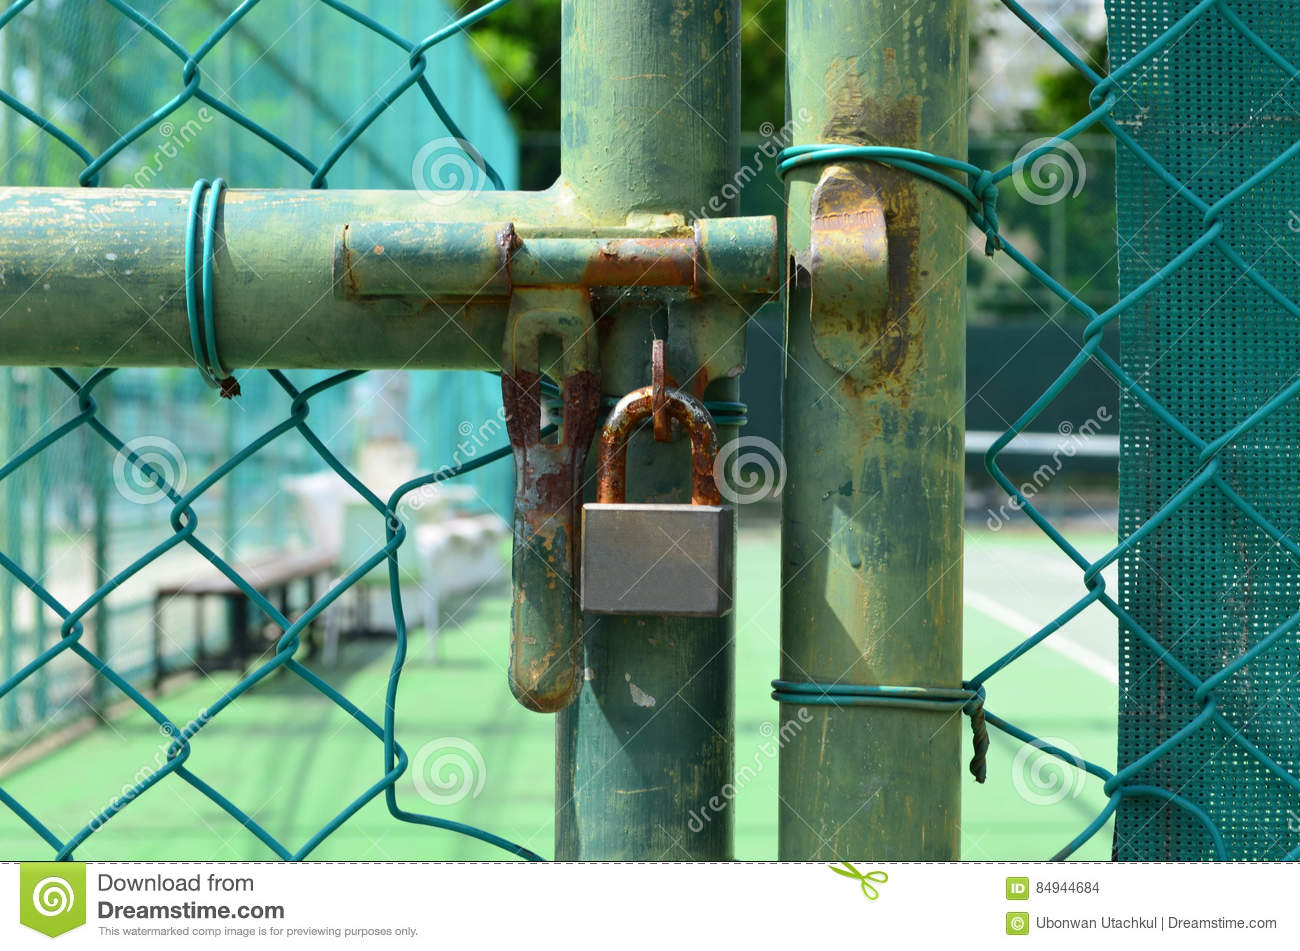 Rust lock at old green wire mesh fence in front of tennis court